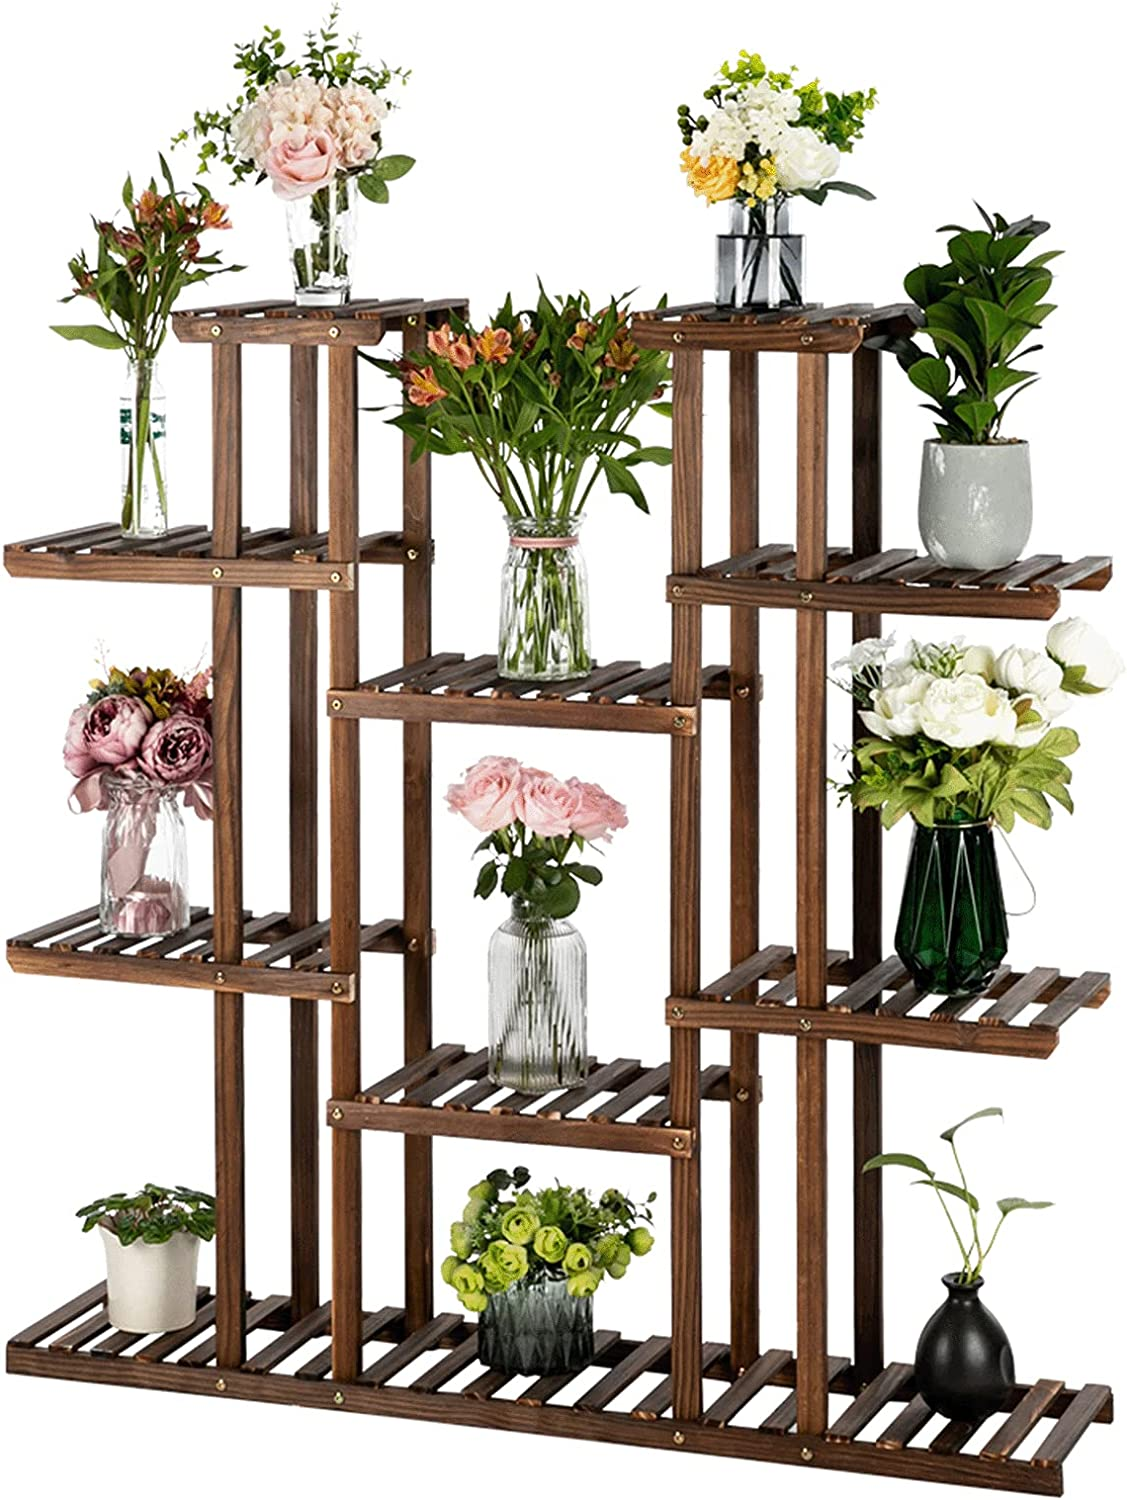 Aweand Plant Stand Indoor Ranking TOP20 Outdoor Shelf 40% OFF Cheap Sale Large Wood Multi